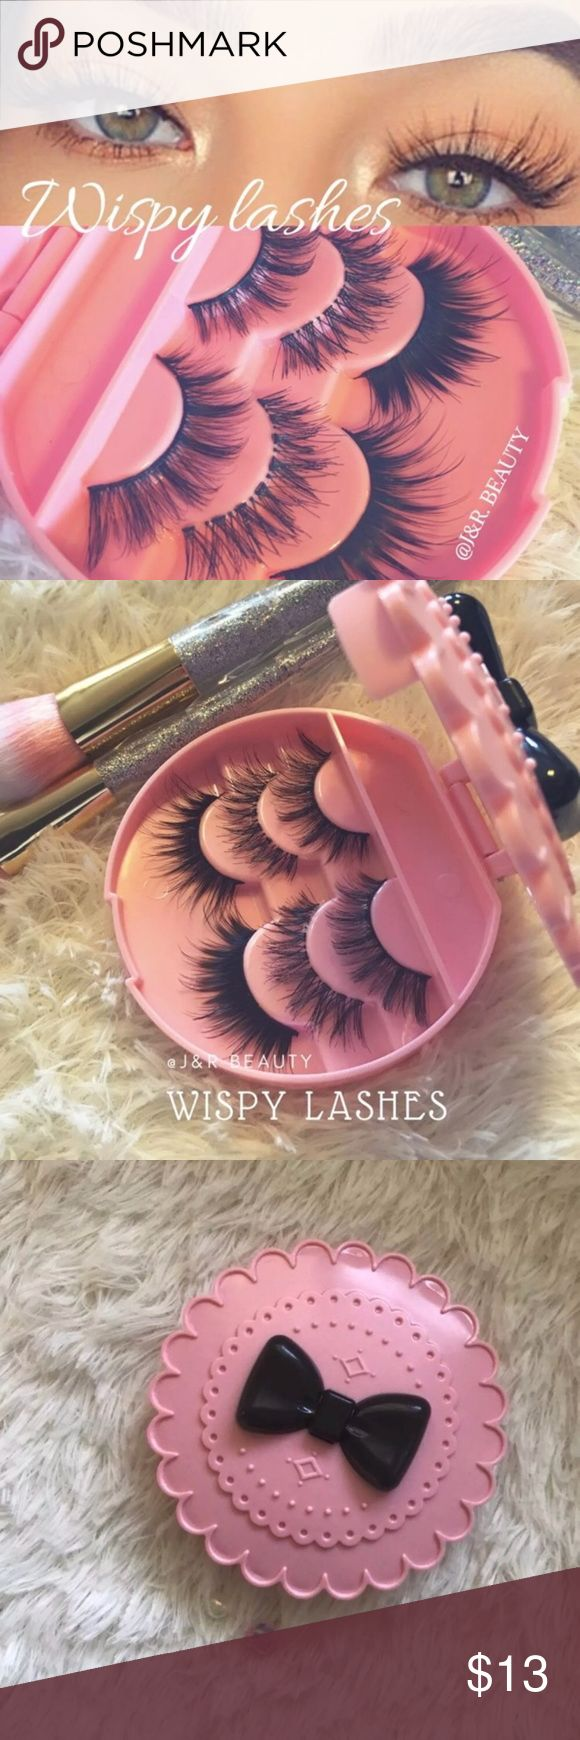 Eyelash case+ Eyelashes +$2 Add on eyelash Applicator  +$3 Add on eyelash glue Please message me if you want to add them.   ❌No Offers ✅ Bundle &  Save  # tags Iconic, mink, red cherry eyelashes, house of lashes, doll, kawaii, case, full, natural,  Koko, Ardell, wispies, Demi , makeup, Iconic, mink, red cherry eyelashes, house of lashes, doll, kawaii, case, full, natural,  Koko, Ardell, wispies, Demi , makeup, mascara, eyelash applicator, Mykonos Mink , Lashes , wispy ,eyelash case, mink